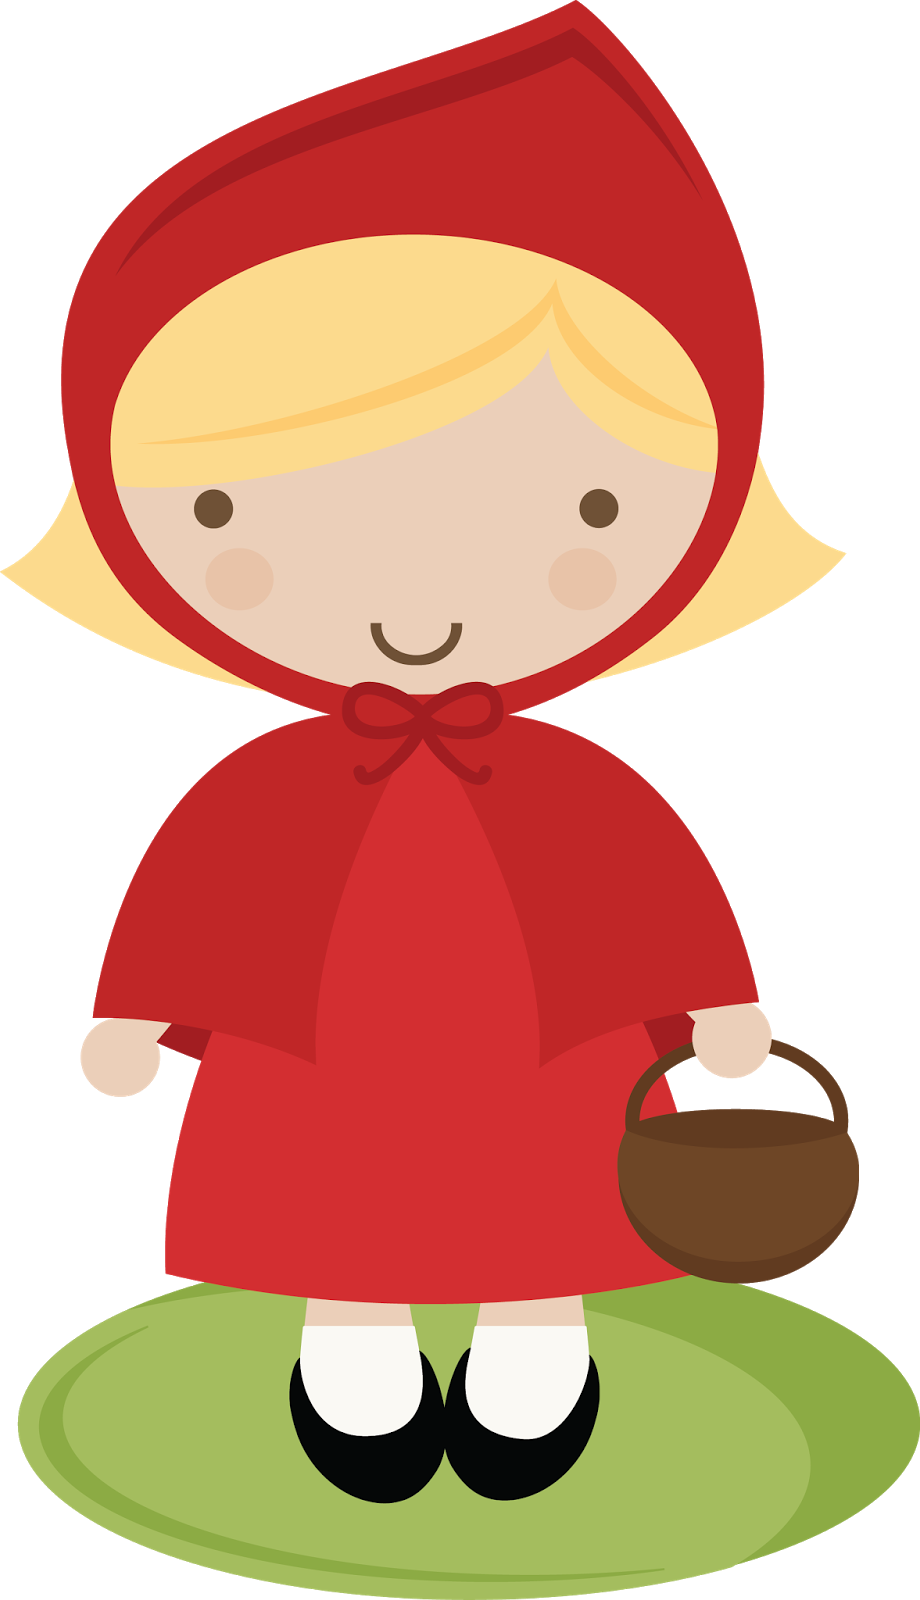 Urban hood clipart clip freeuse stock Little Red Riding Hood Clipart | Free download best Little ... clip freeuse stock